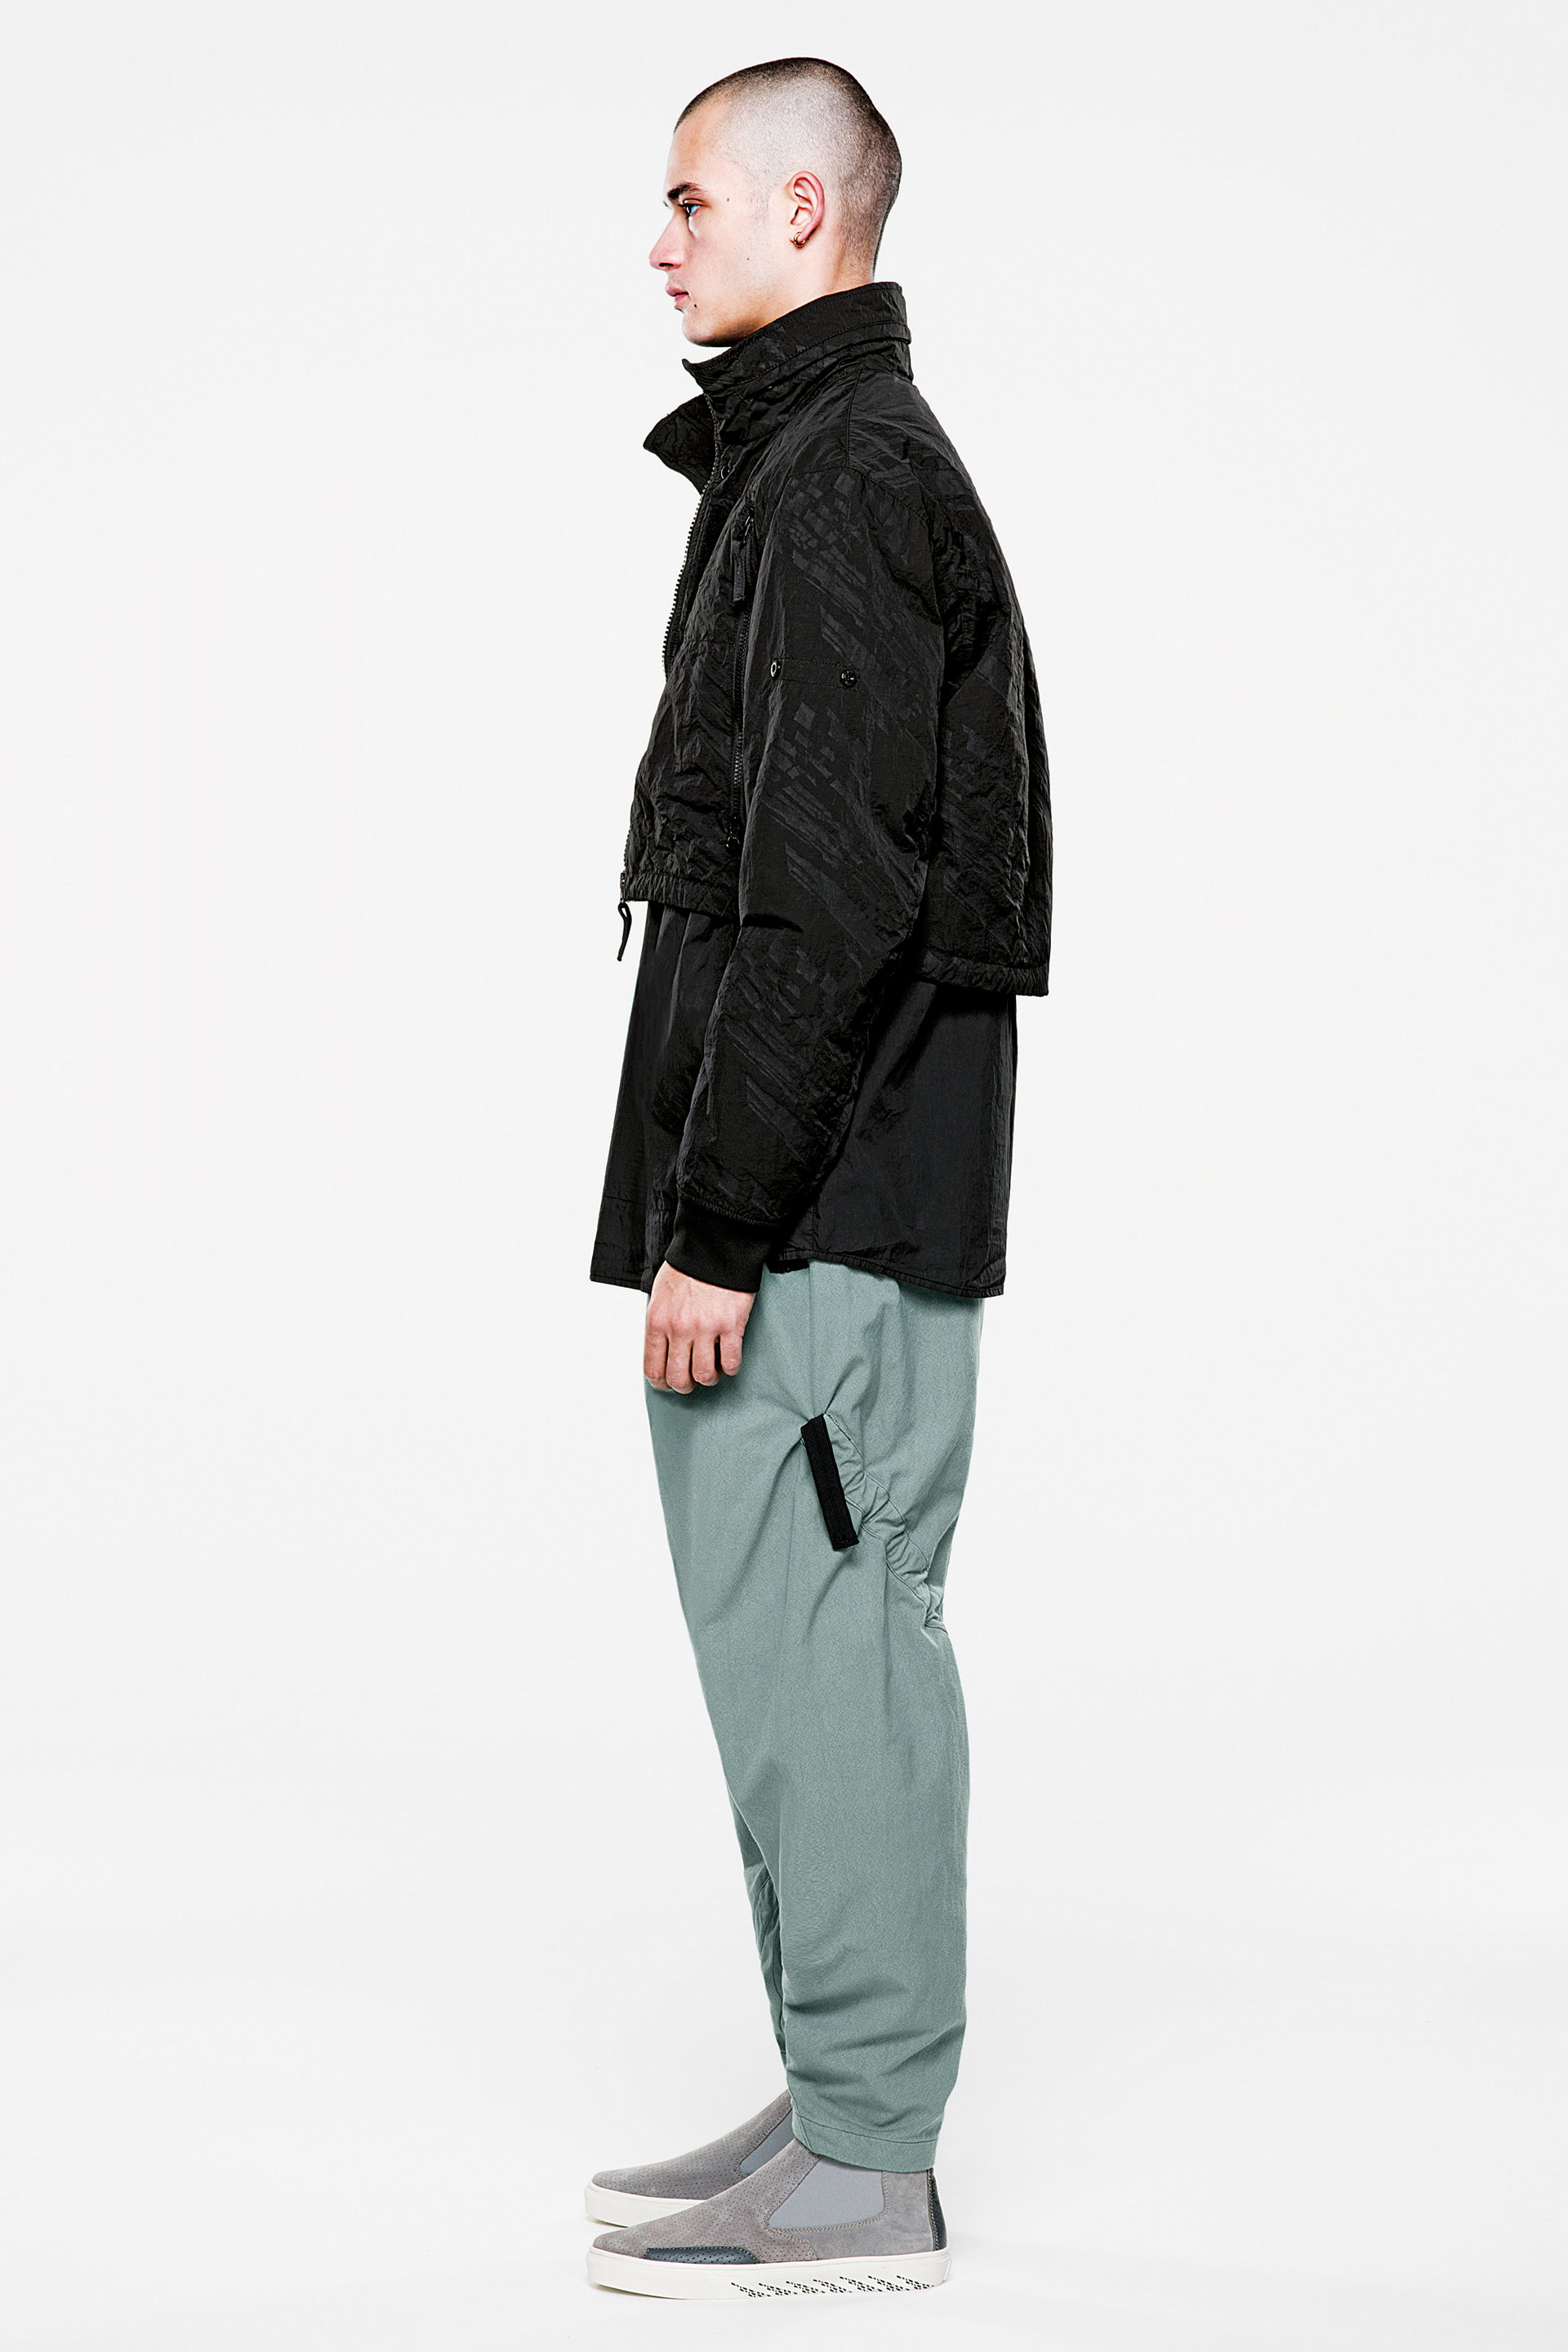 7019 Stone Island Shadow Project 2019 Spring Summer